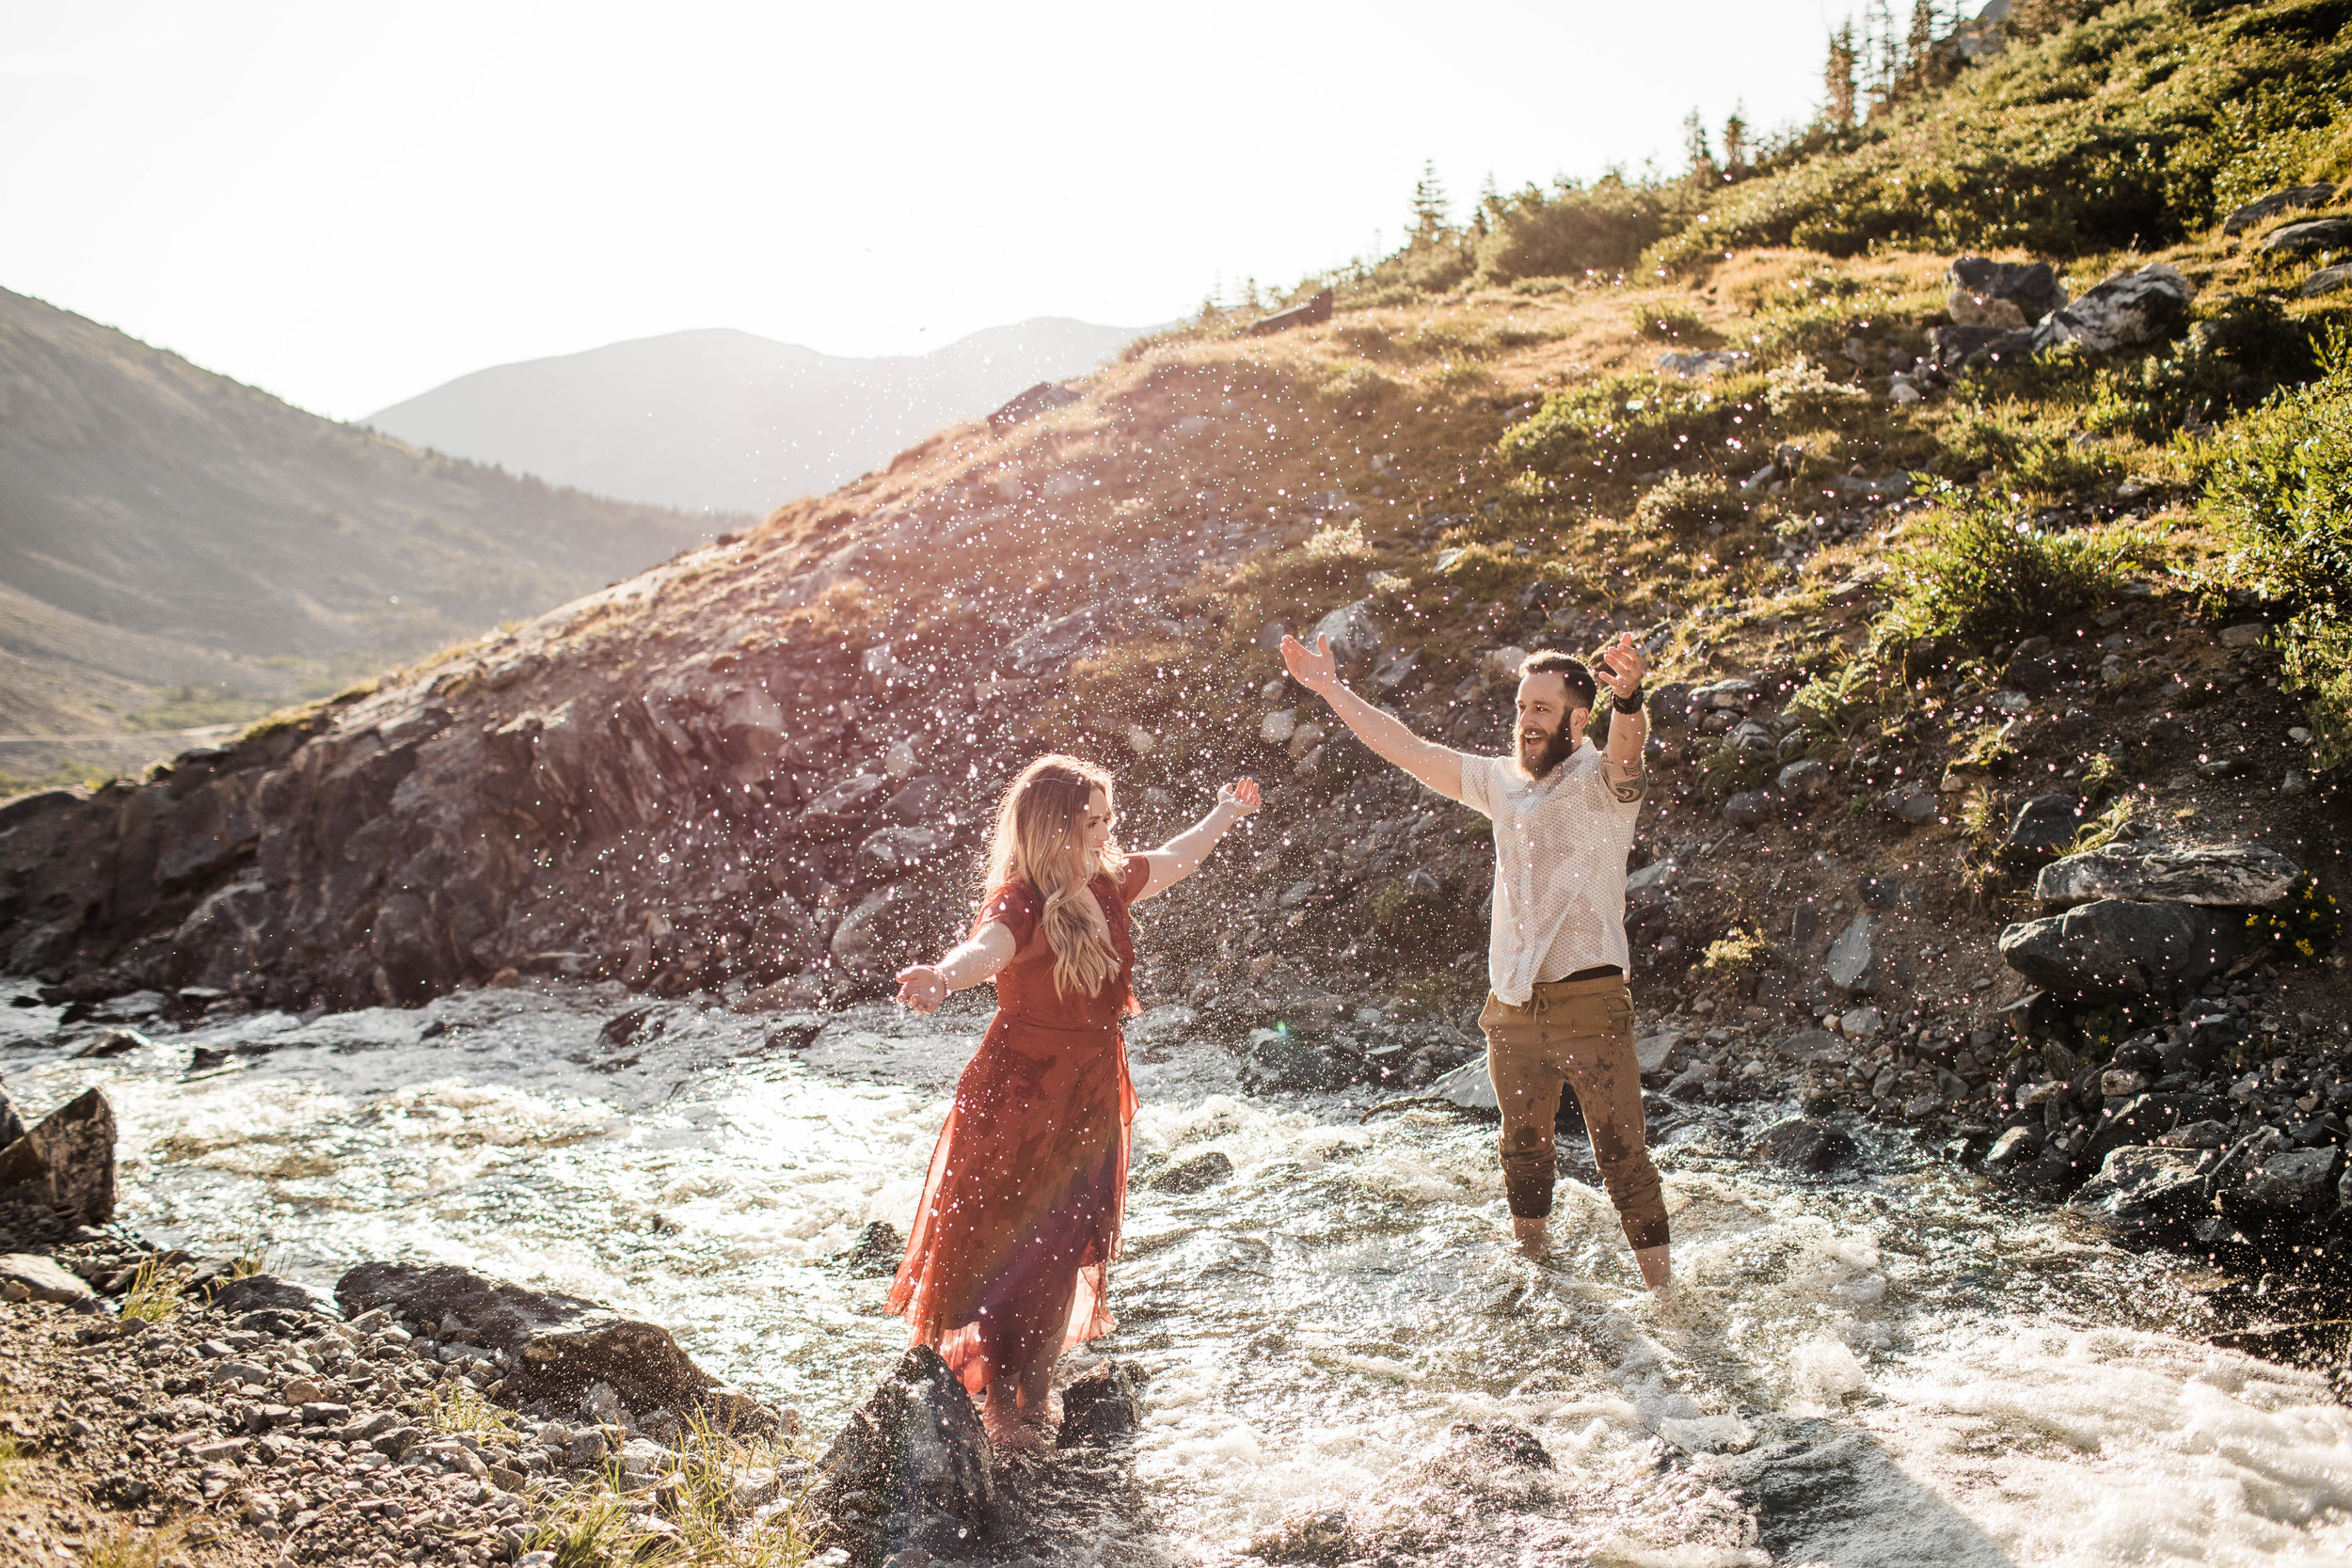 eloping couple splashing around in a creek during their adventurous engagement photos in the mountains of Colorado | Breckenridge adventure elopements